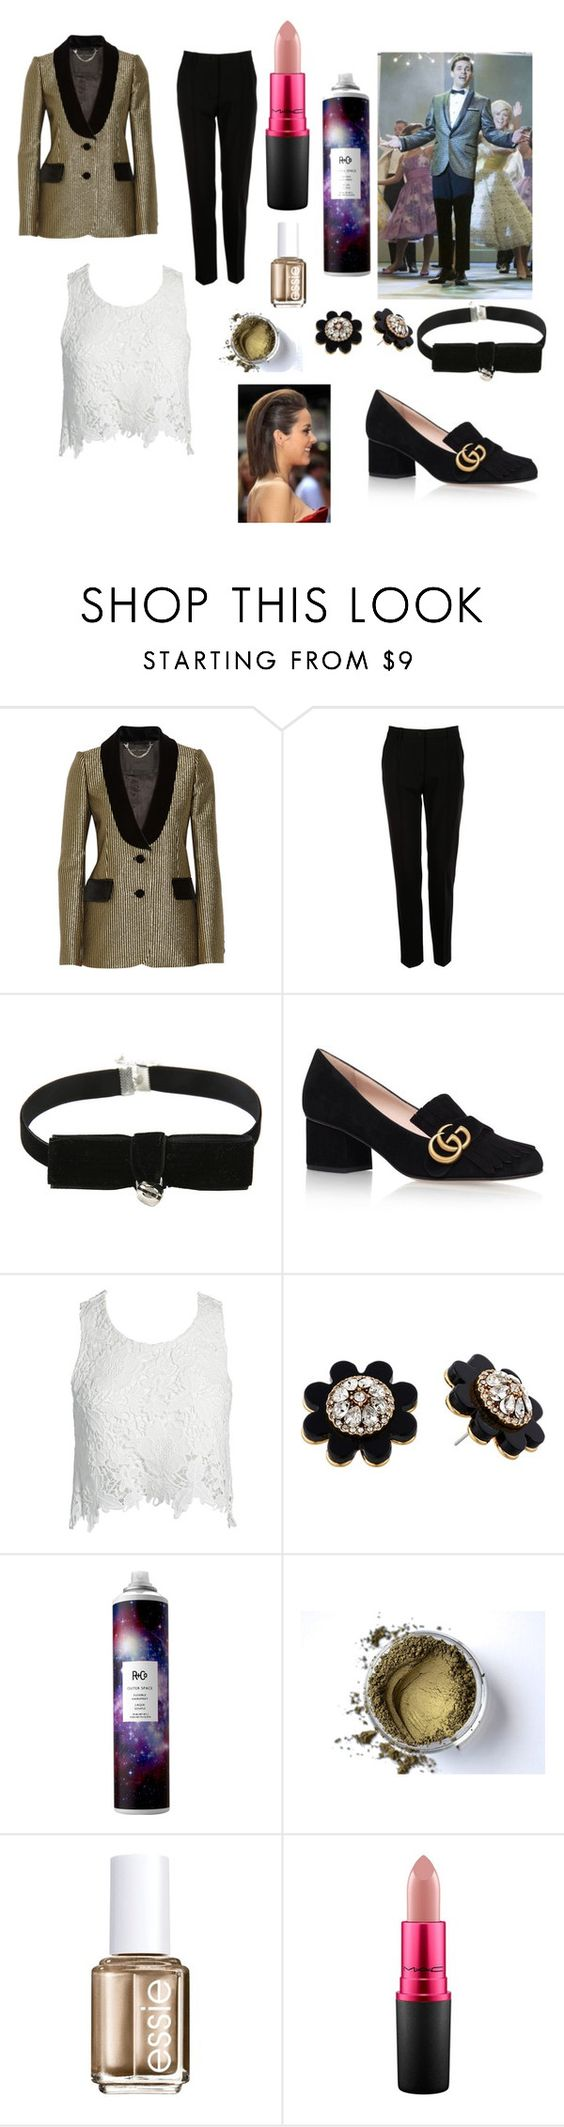 """""""Corny Collins inspired gender swap"""" by mrslexluthorloki ❤ liked on Polyvore featuring Marc Jacobs, Dolce&Gabbana, Gucci, Sans Souci, Kate Spade, R+Co, Essie and MAC Cosmetics"""